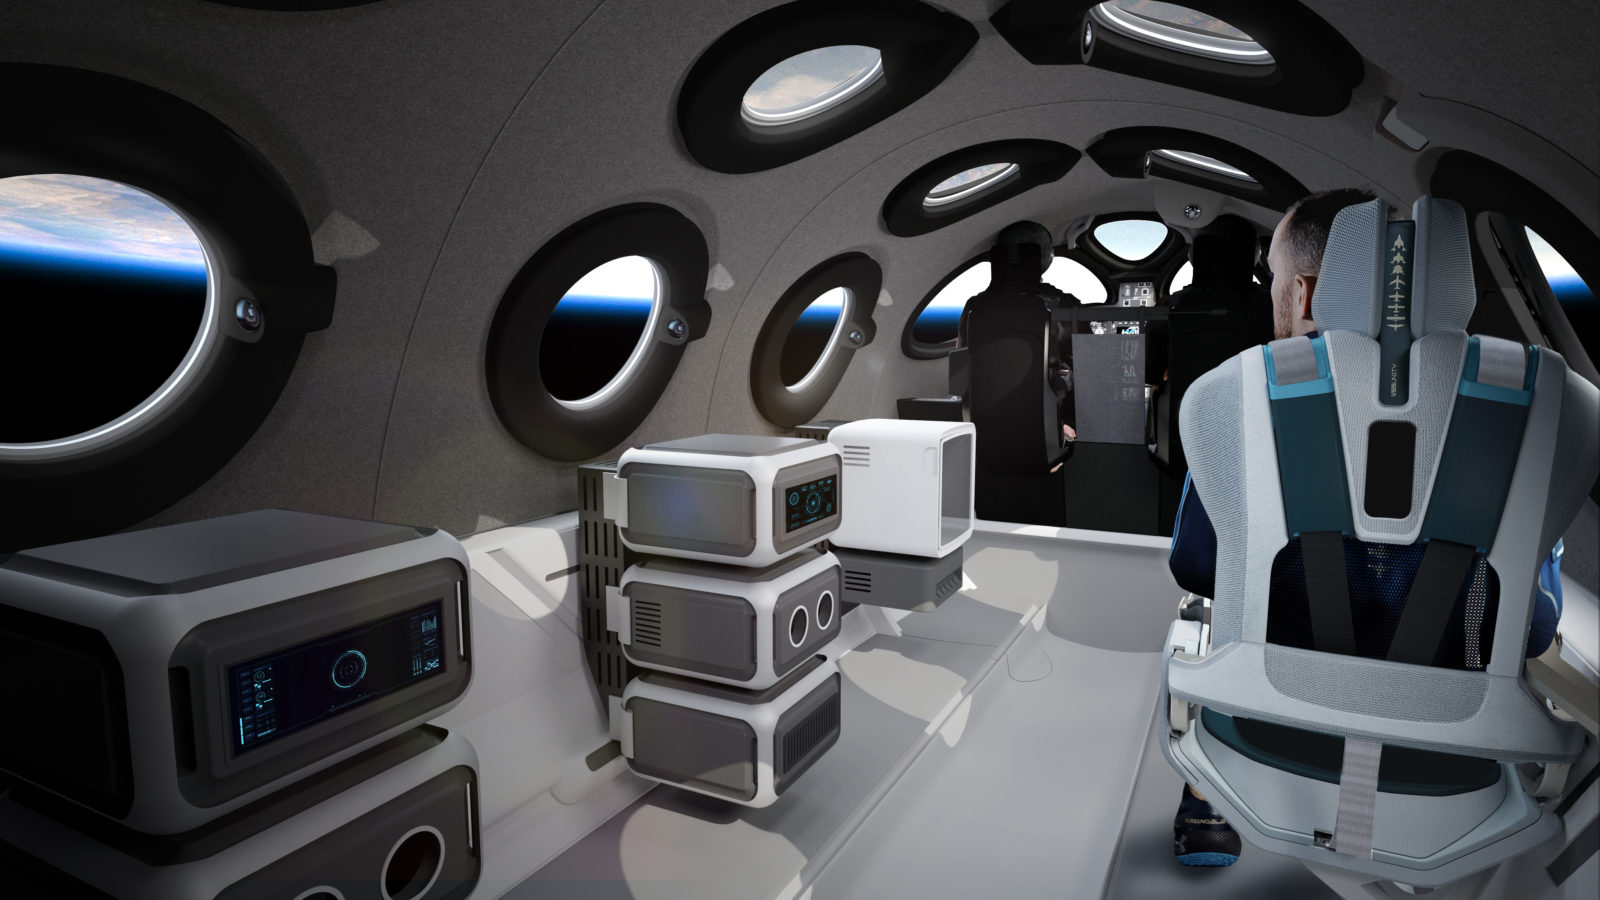 Virgin Galactic Spaceship Cabin In Payload Configuration 1 1600x900